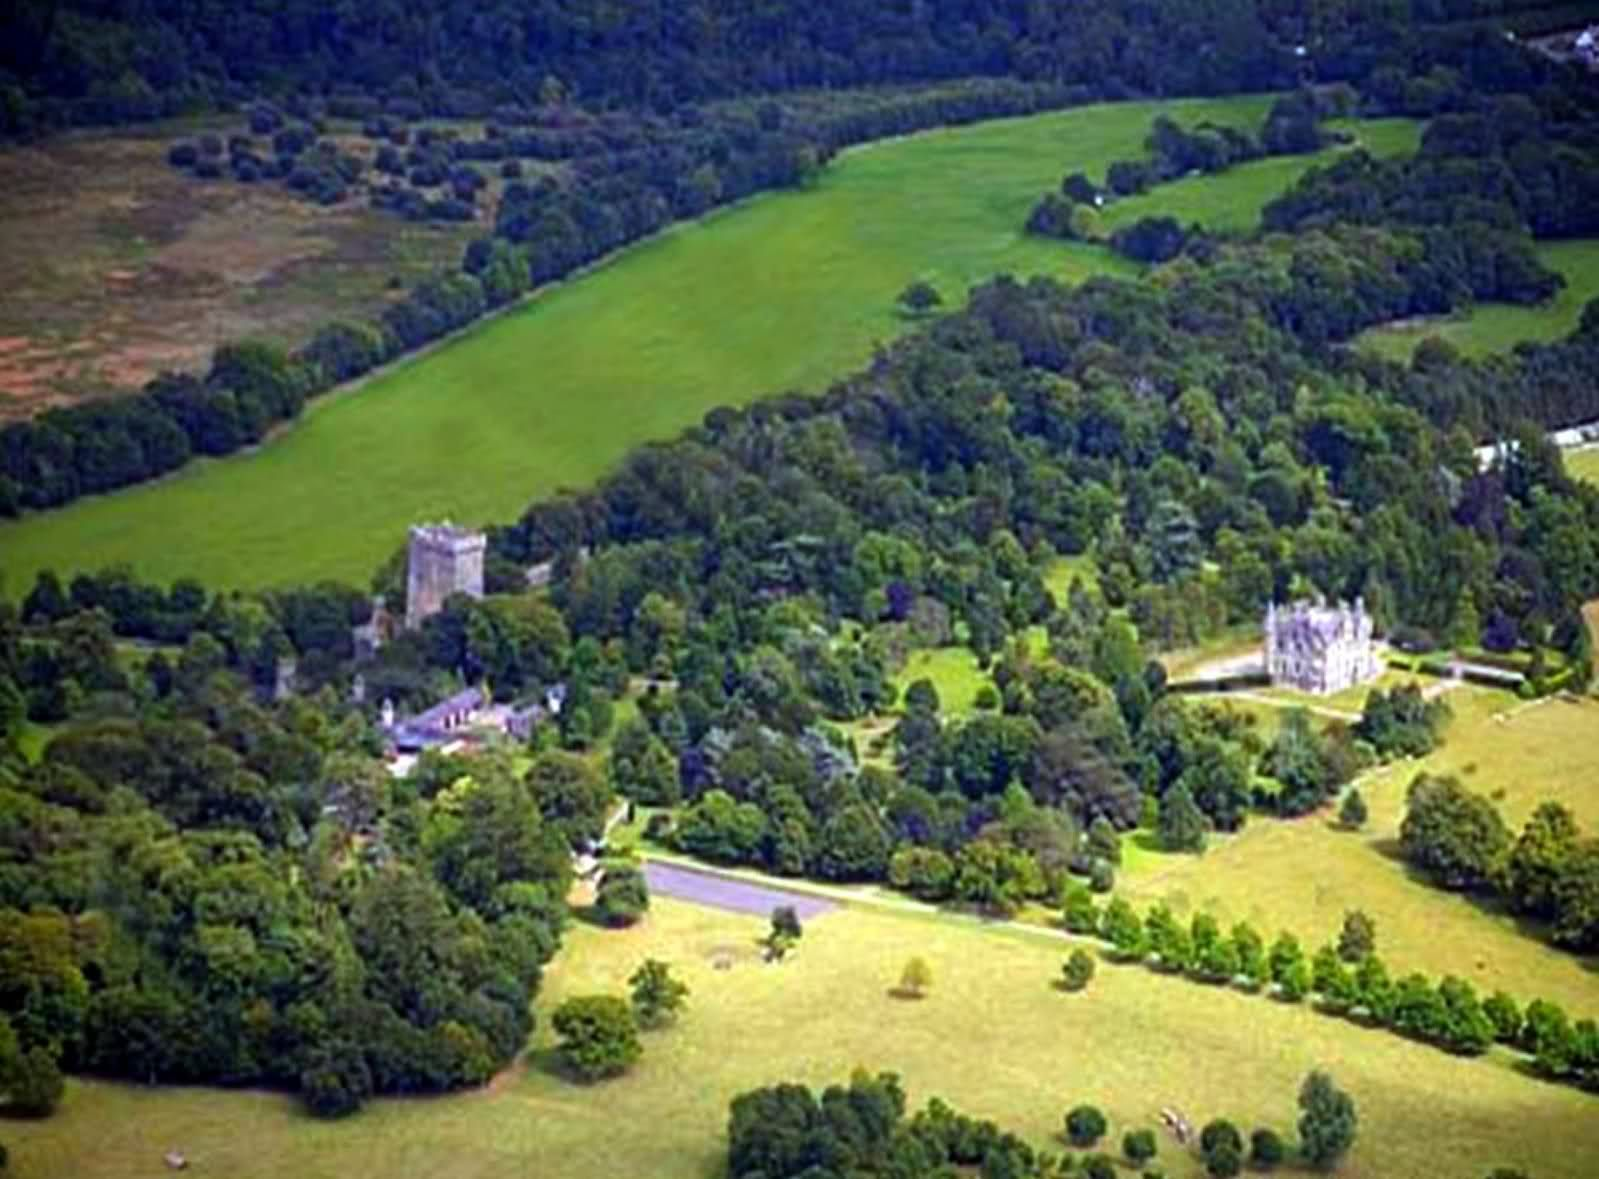 Dublin Ireland Blarney Castle sky view. (With images